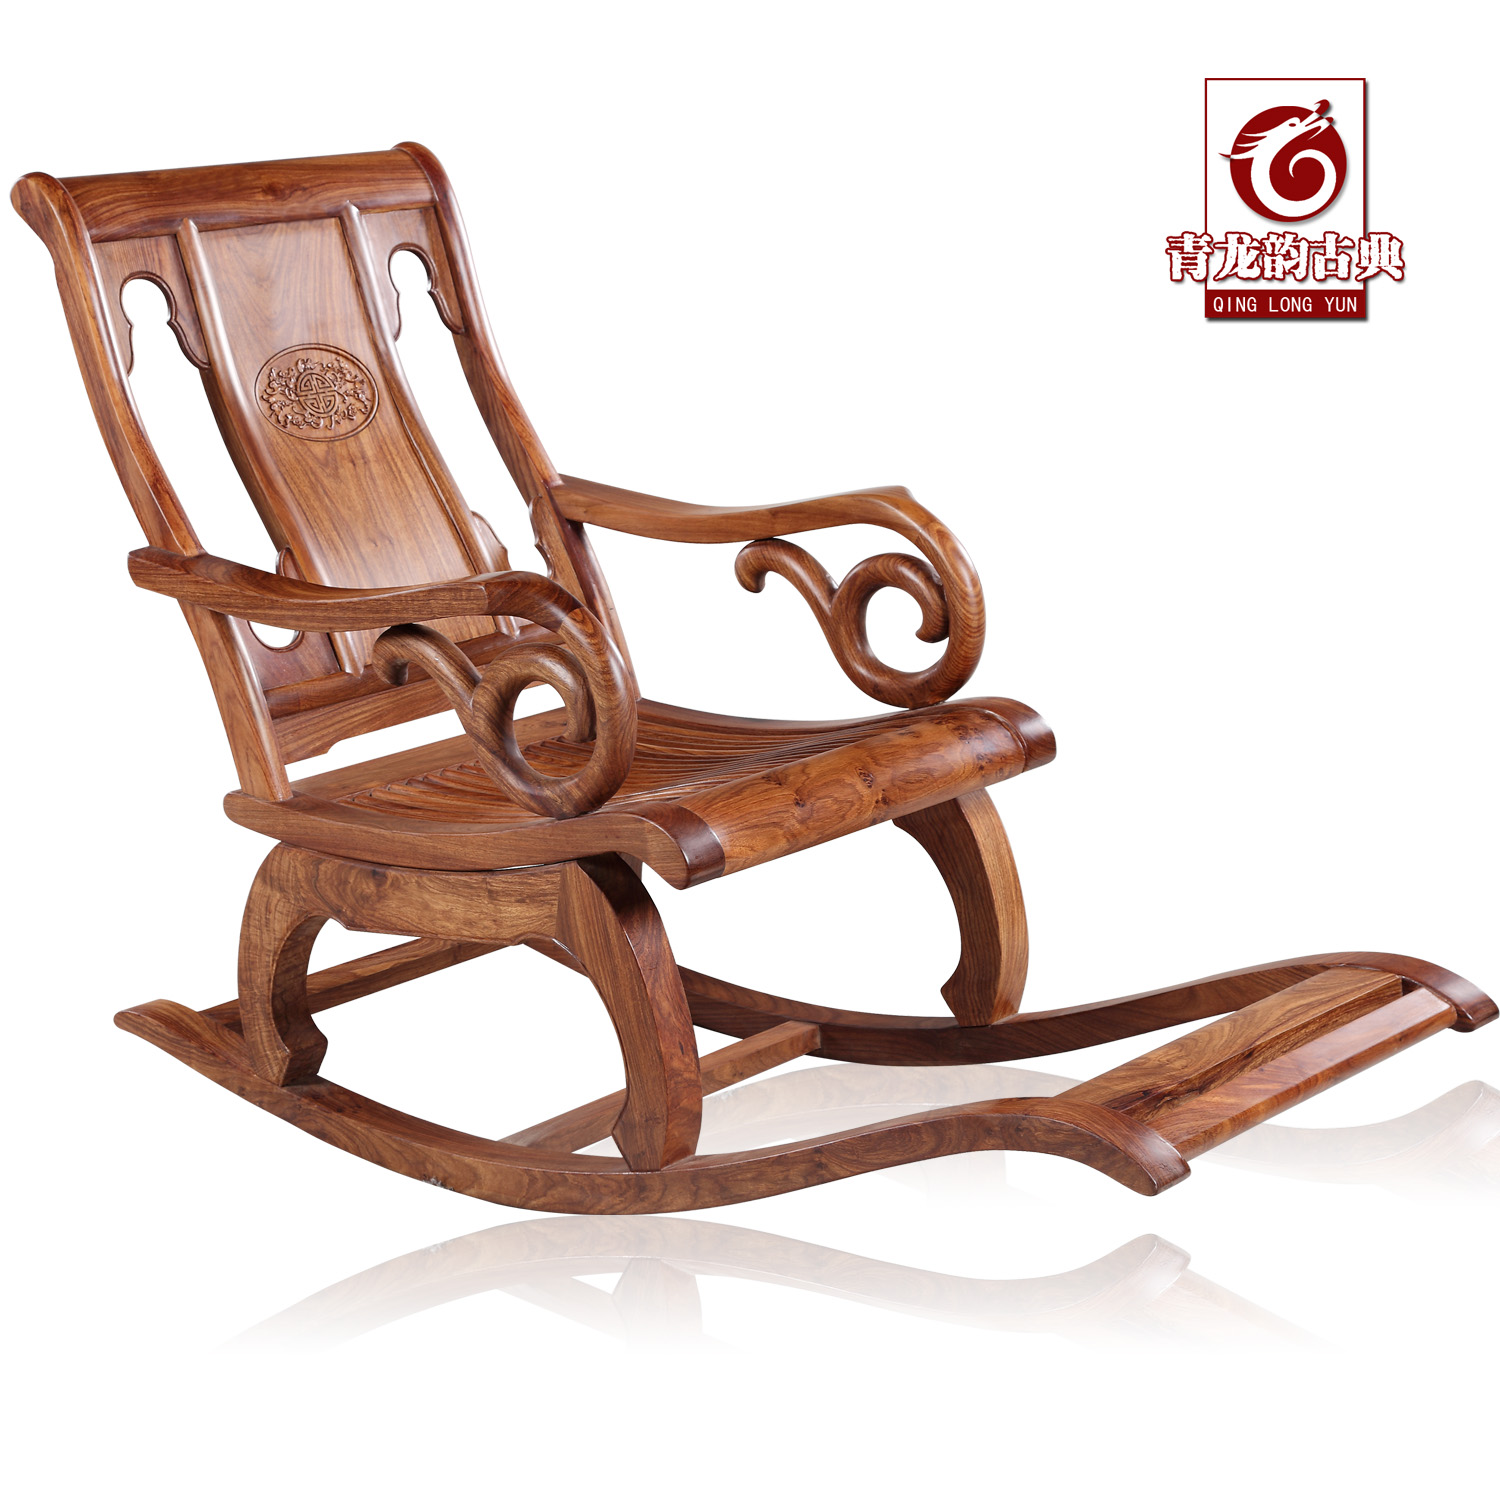 China Chaise Lounge Chair China Chaise Lounge Chair Shopping